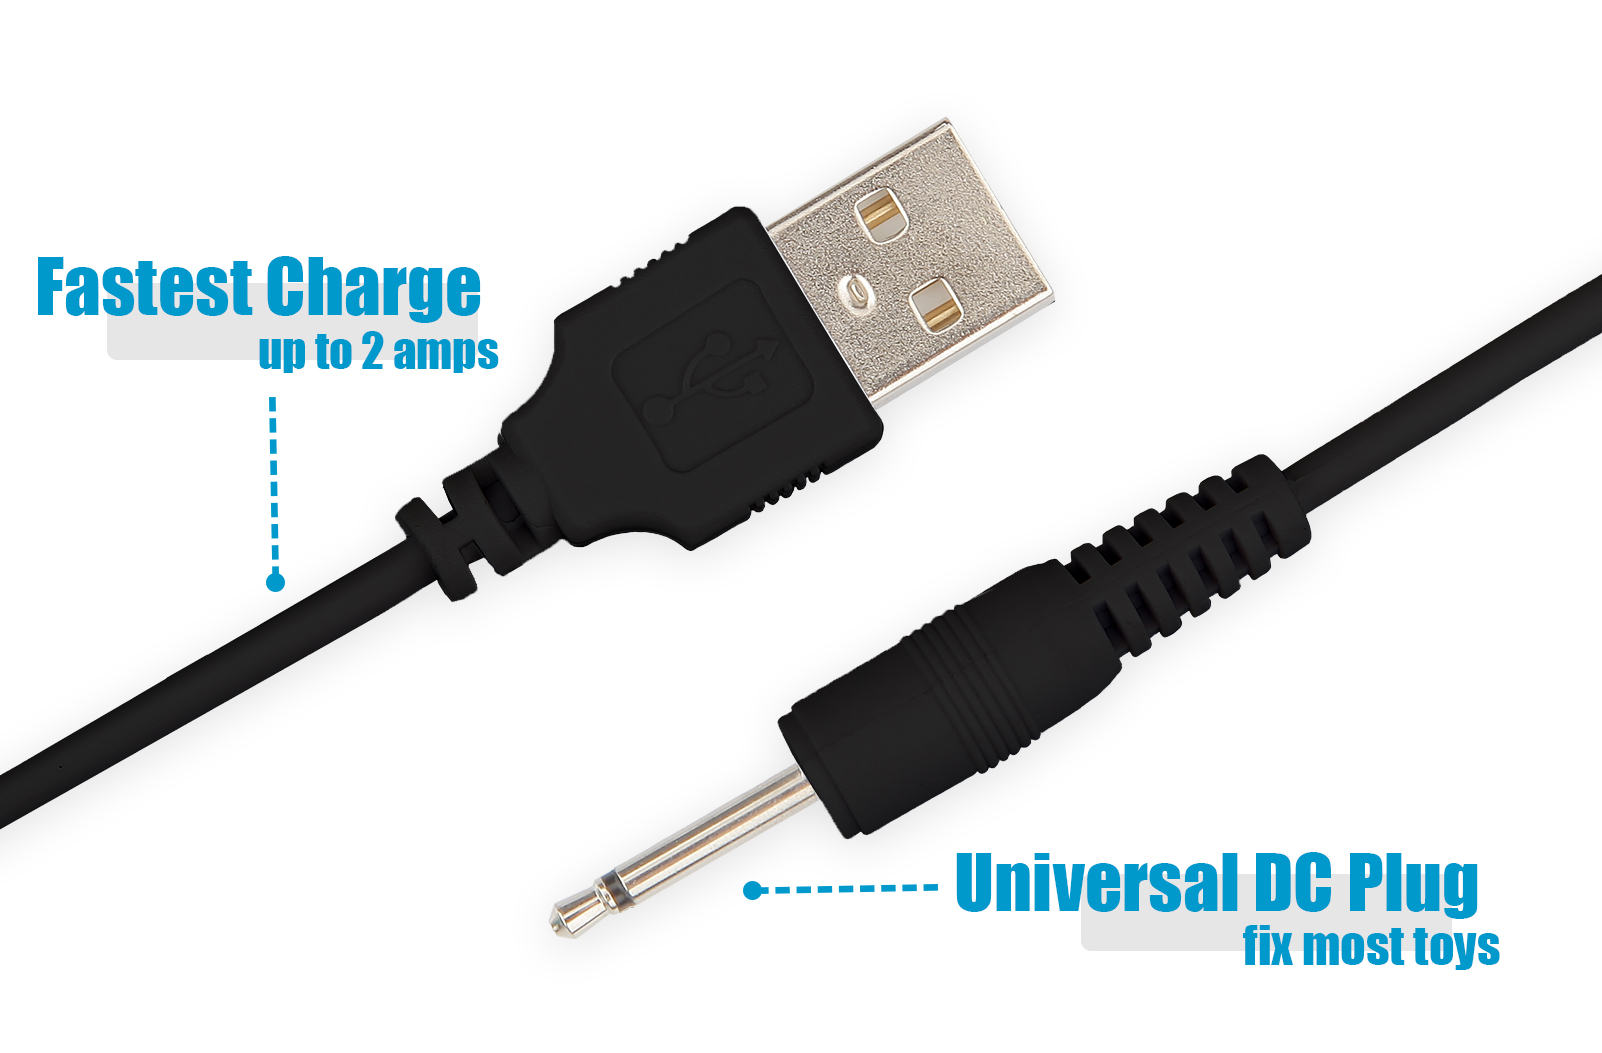 1 fast charging dc cable cord for rechargeable massagers work with universal usb power supply. Black Bedroom Furniture Sets. Home Design Ideas